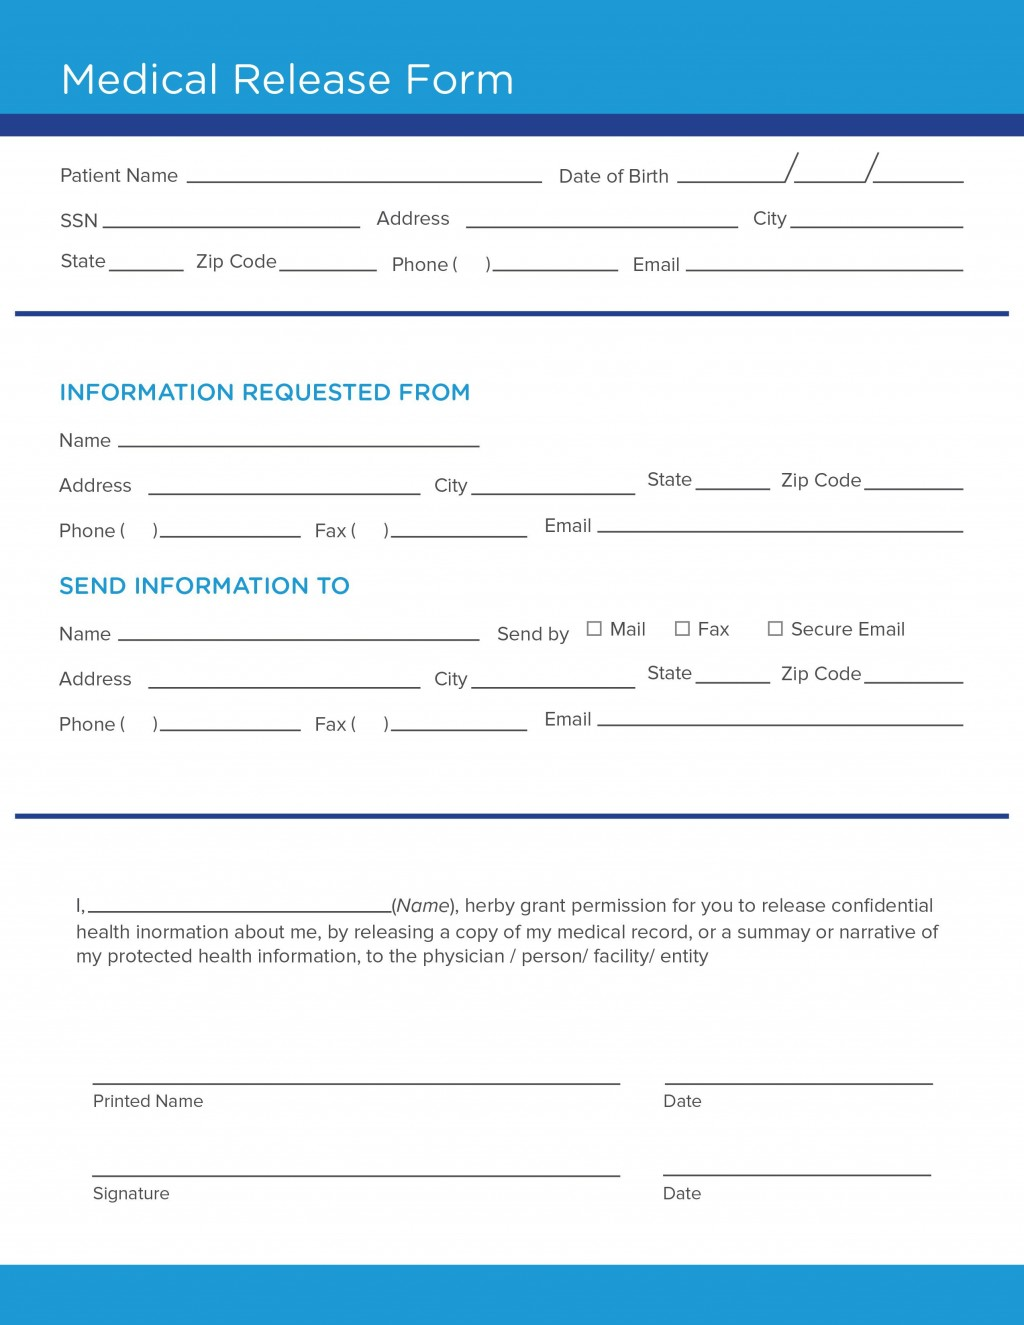 008 Surprising Medical Release Form Template High Def  Free Consent Uk For MinorLarge